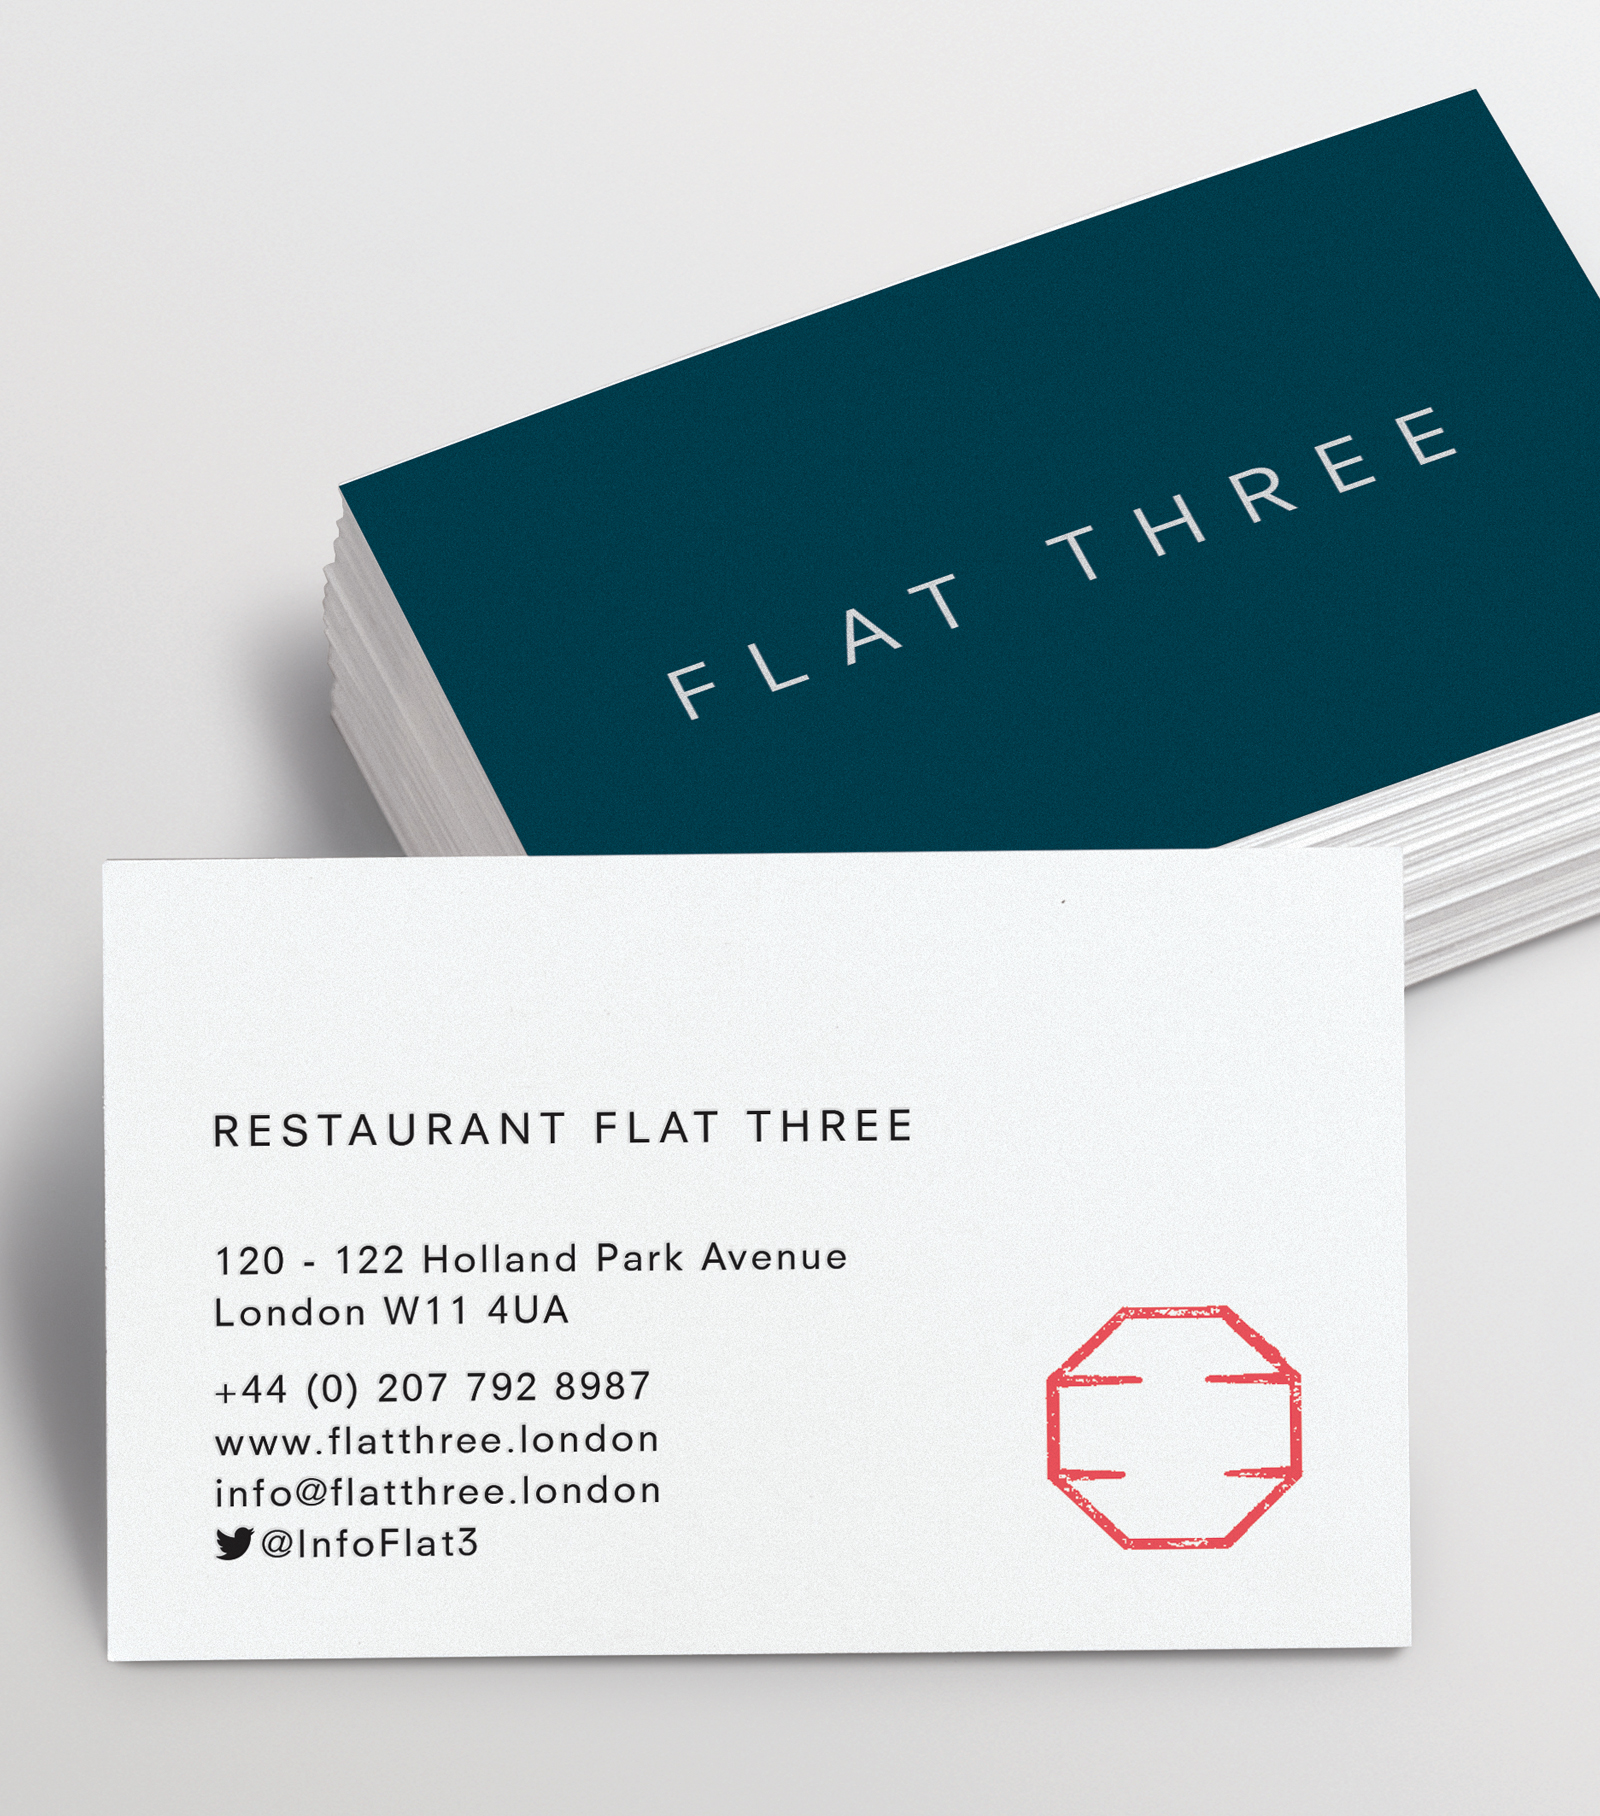 FEATURED_IMAGE_Flat Three